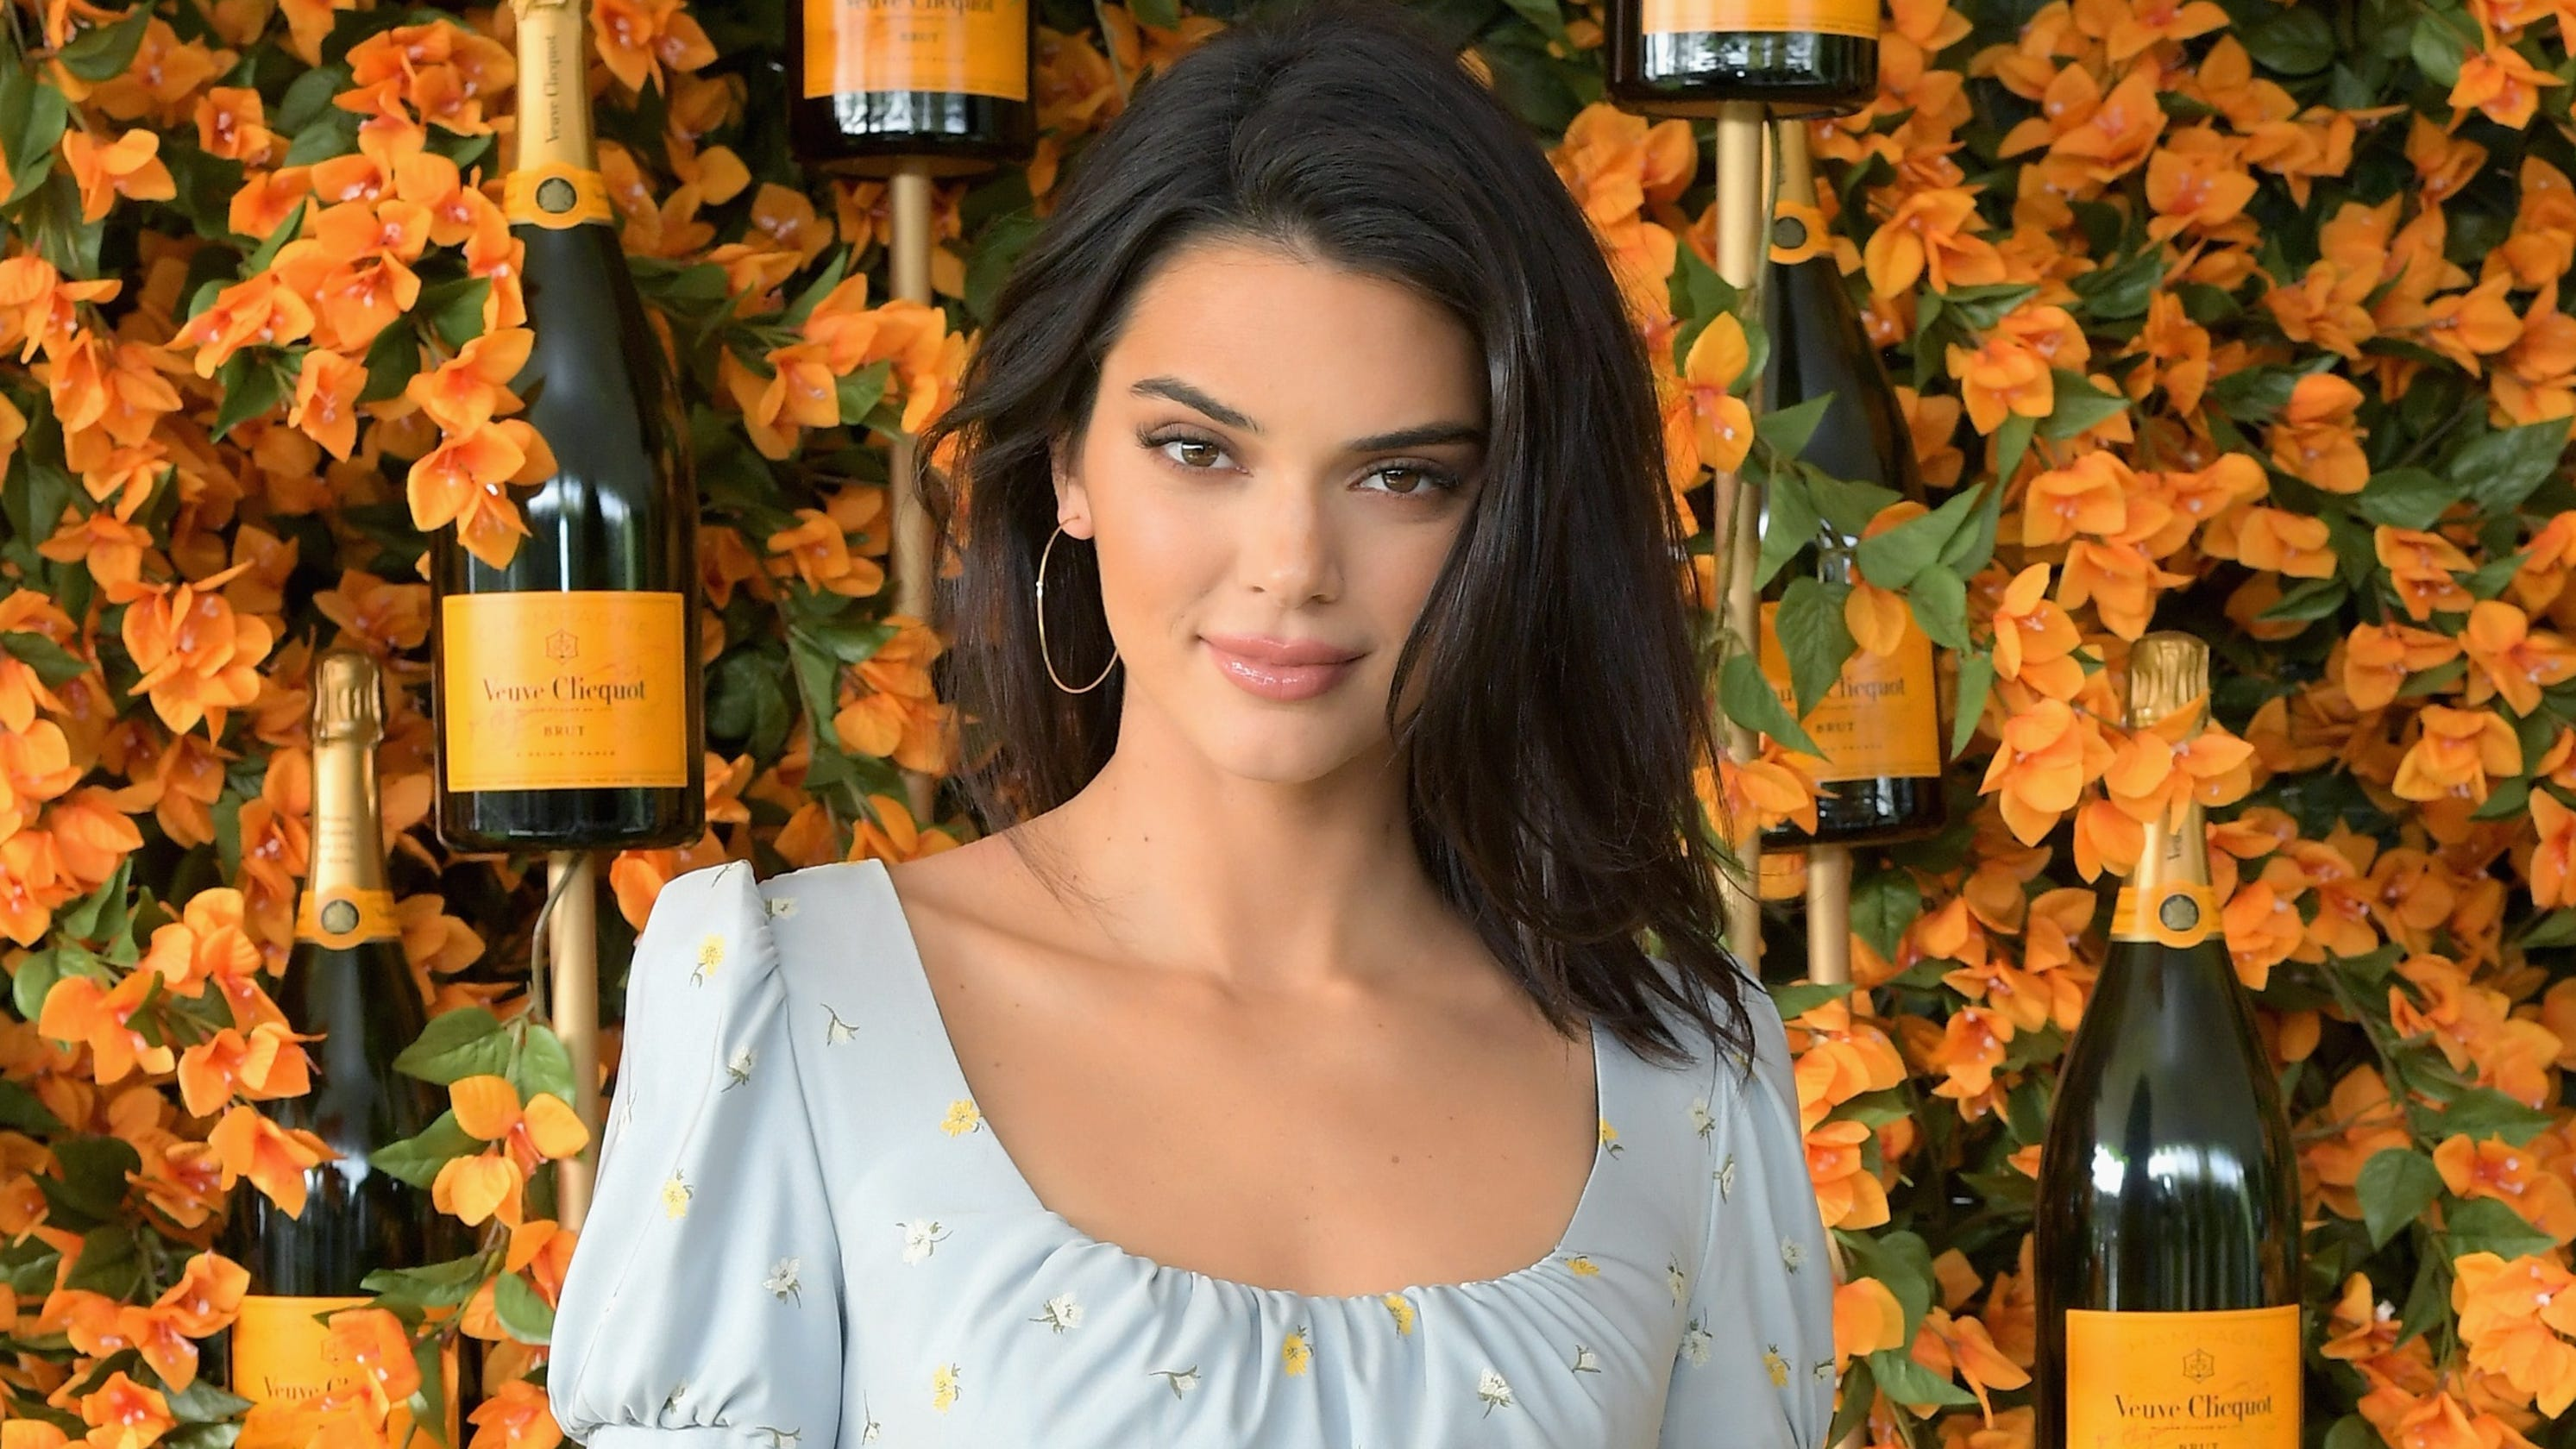 ae7c825ae84  Keeping up with the Kardashians  star Kendall Jenner visits Desert X in  Palm Springs